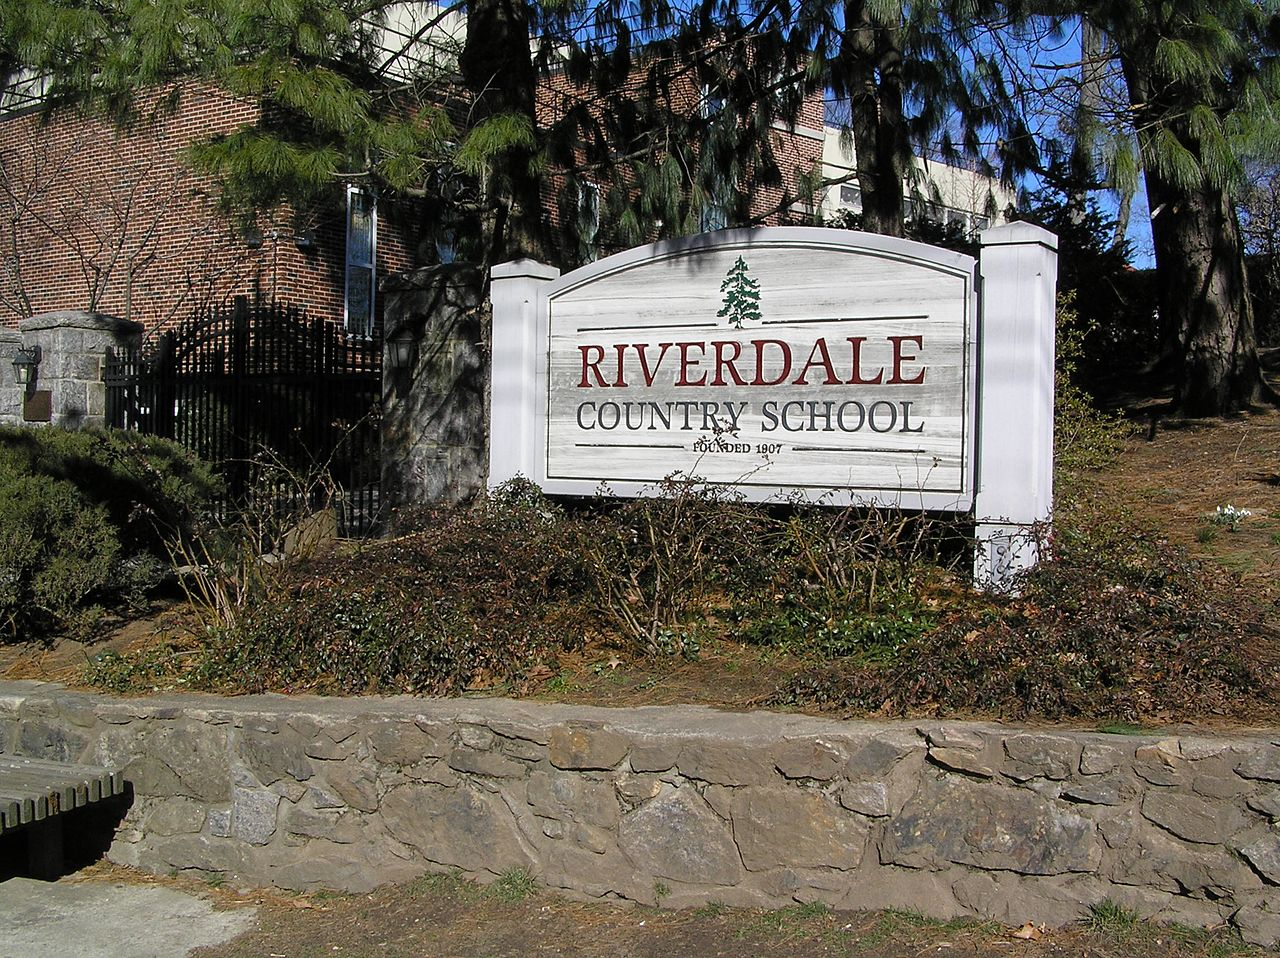 The Riverdale Country School Campus Entrance Sign (Anthony22/Wikimedia Commons)